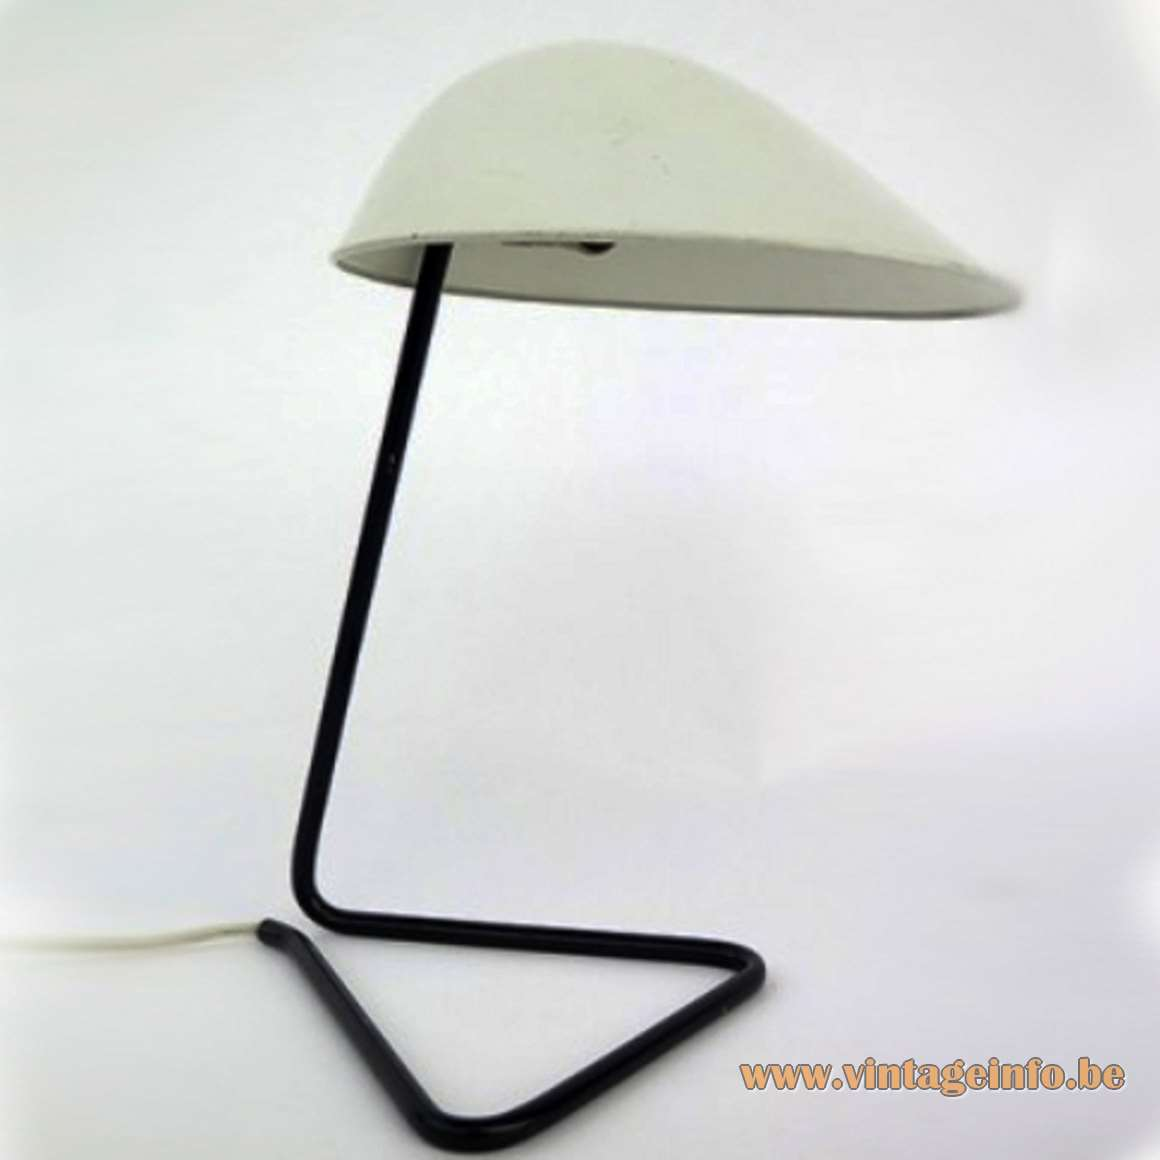 BAG Turgi Switzerland Desk or Wall Lamp 1950s